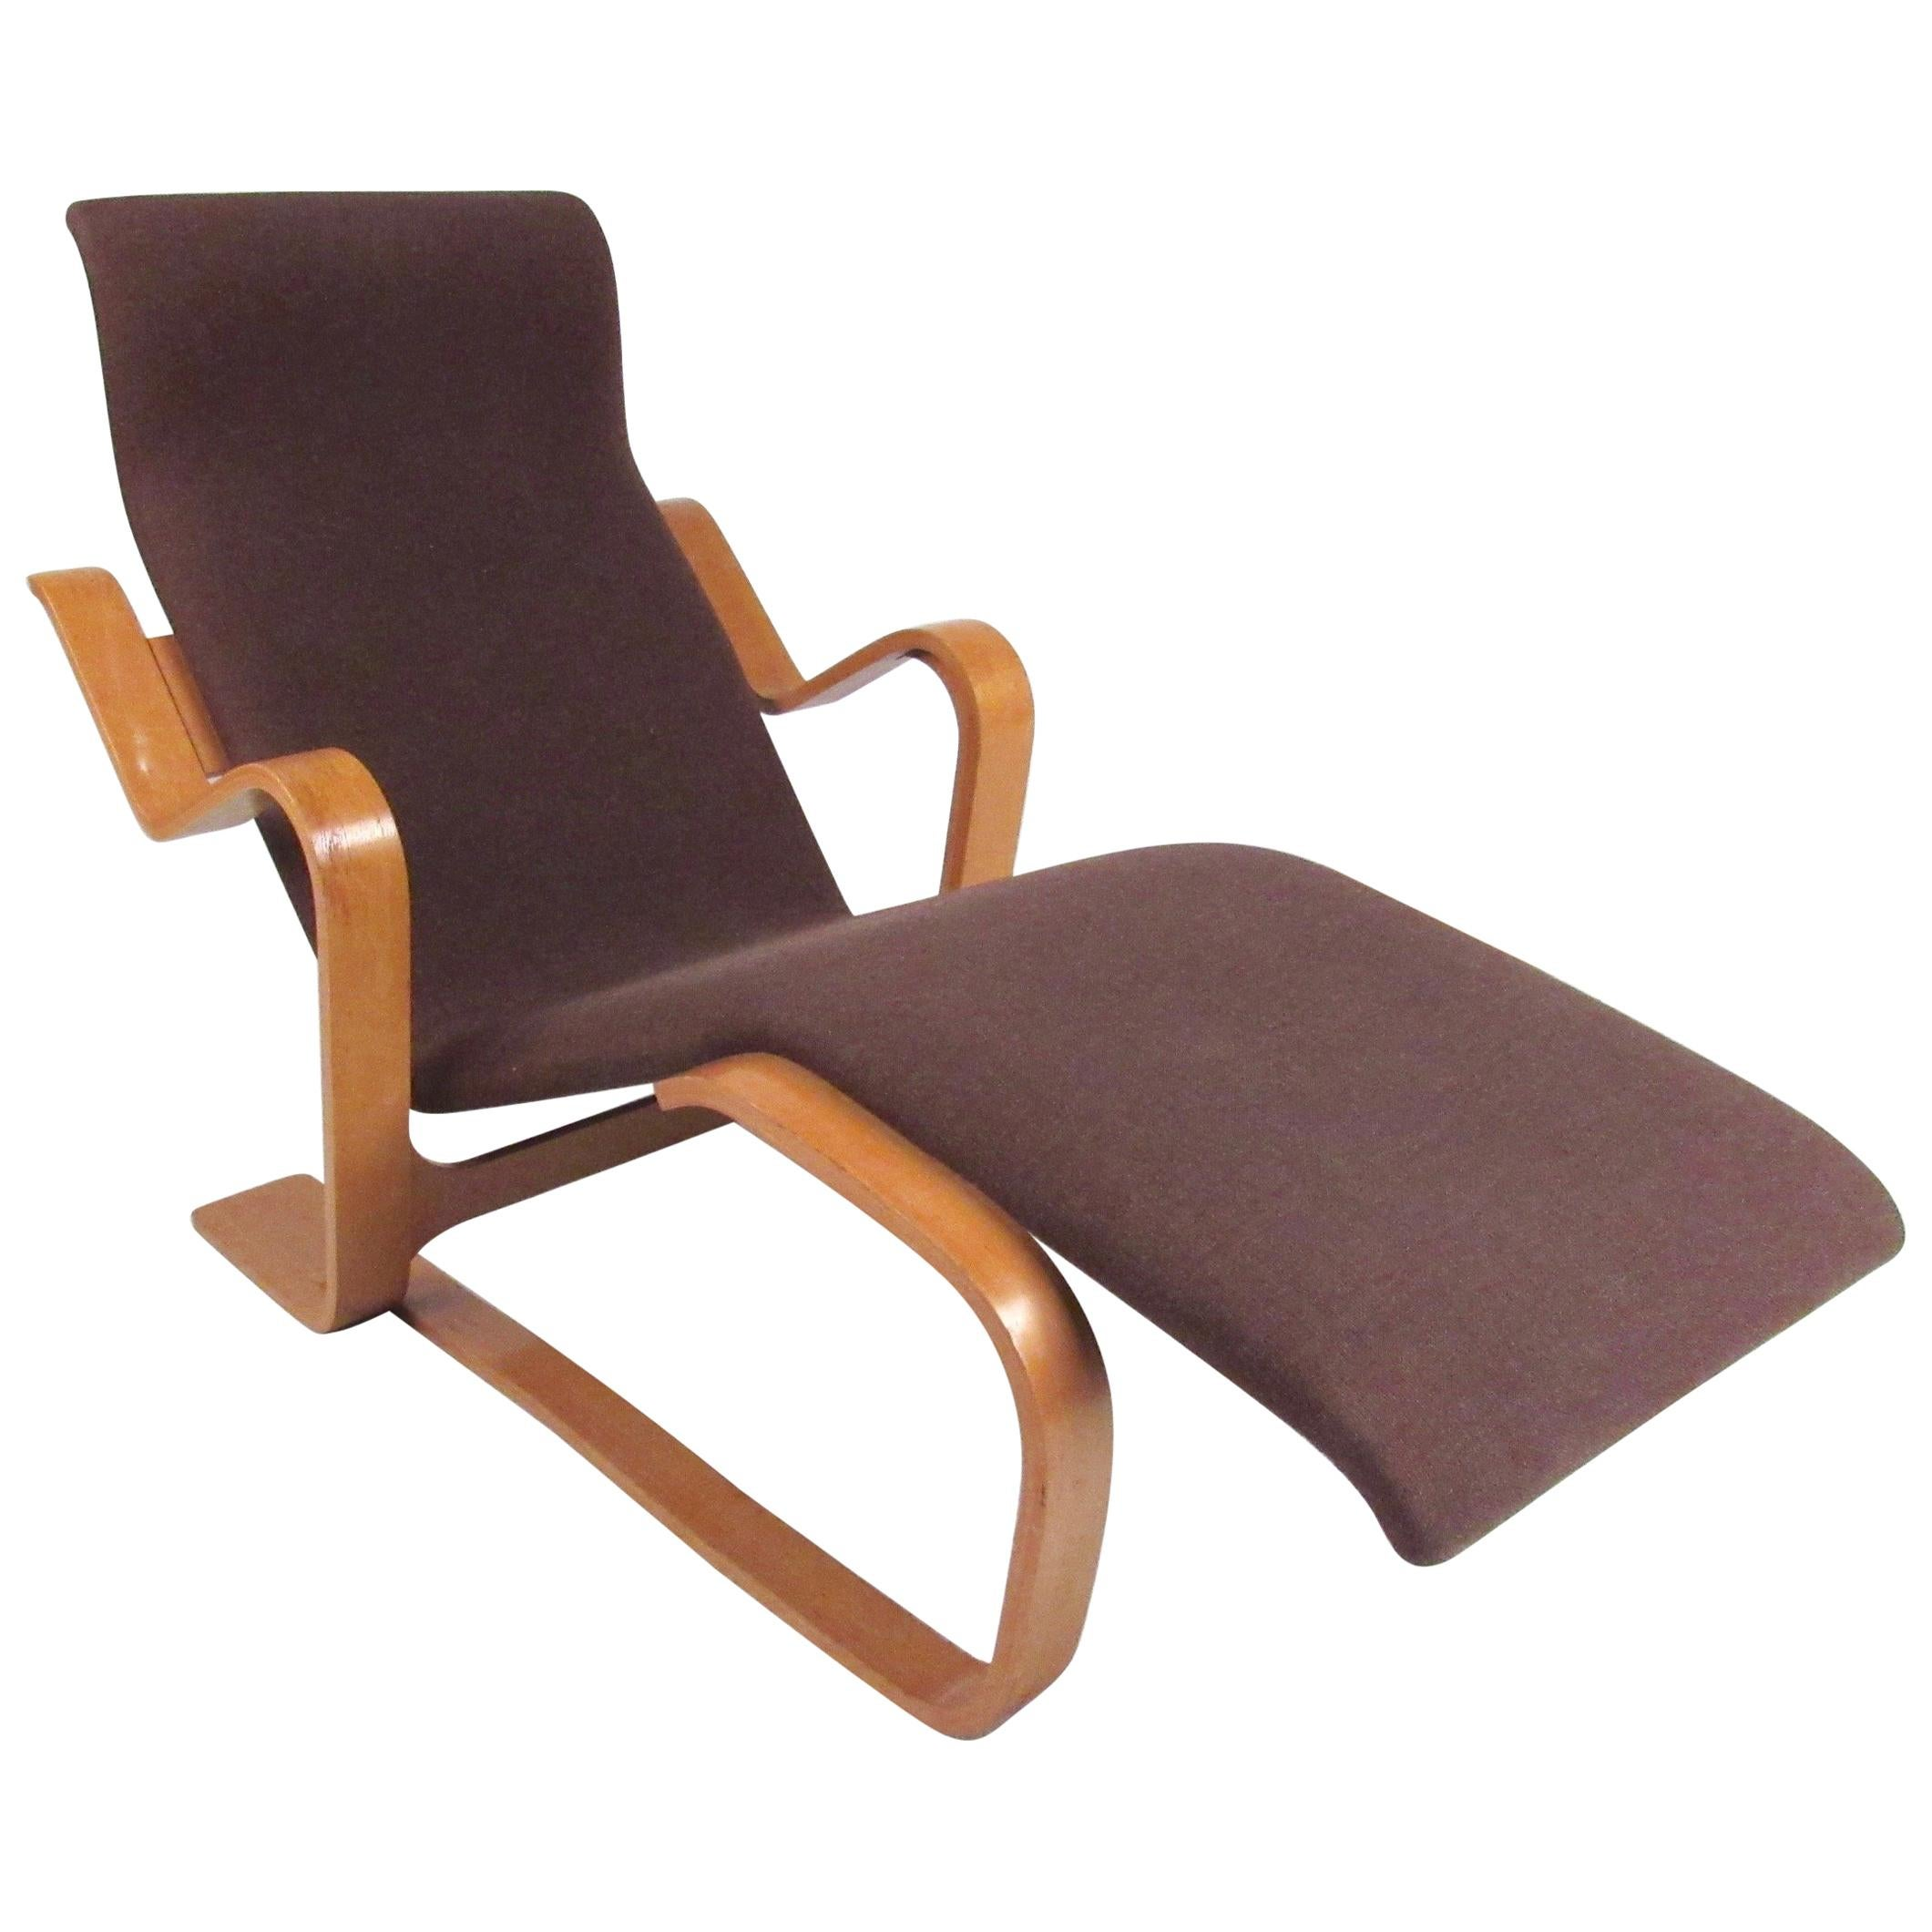 Teak Chaise Lounge Chairs Scandinavian Modern Bentwood Teak Lounge Chair